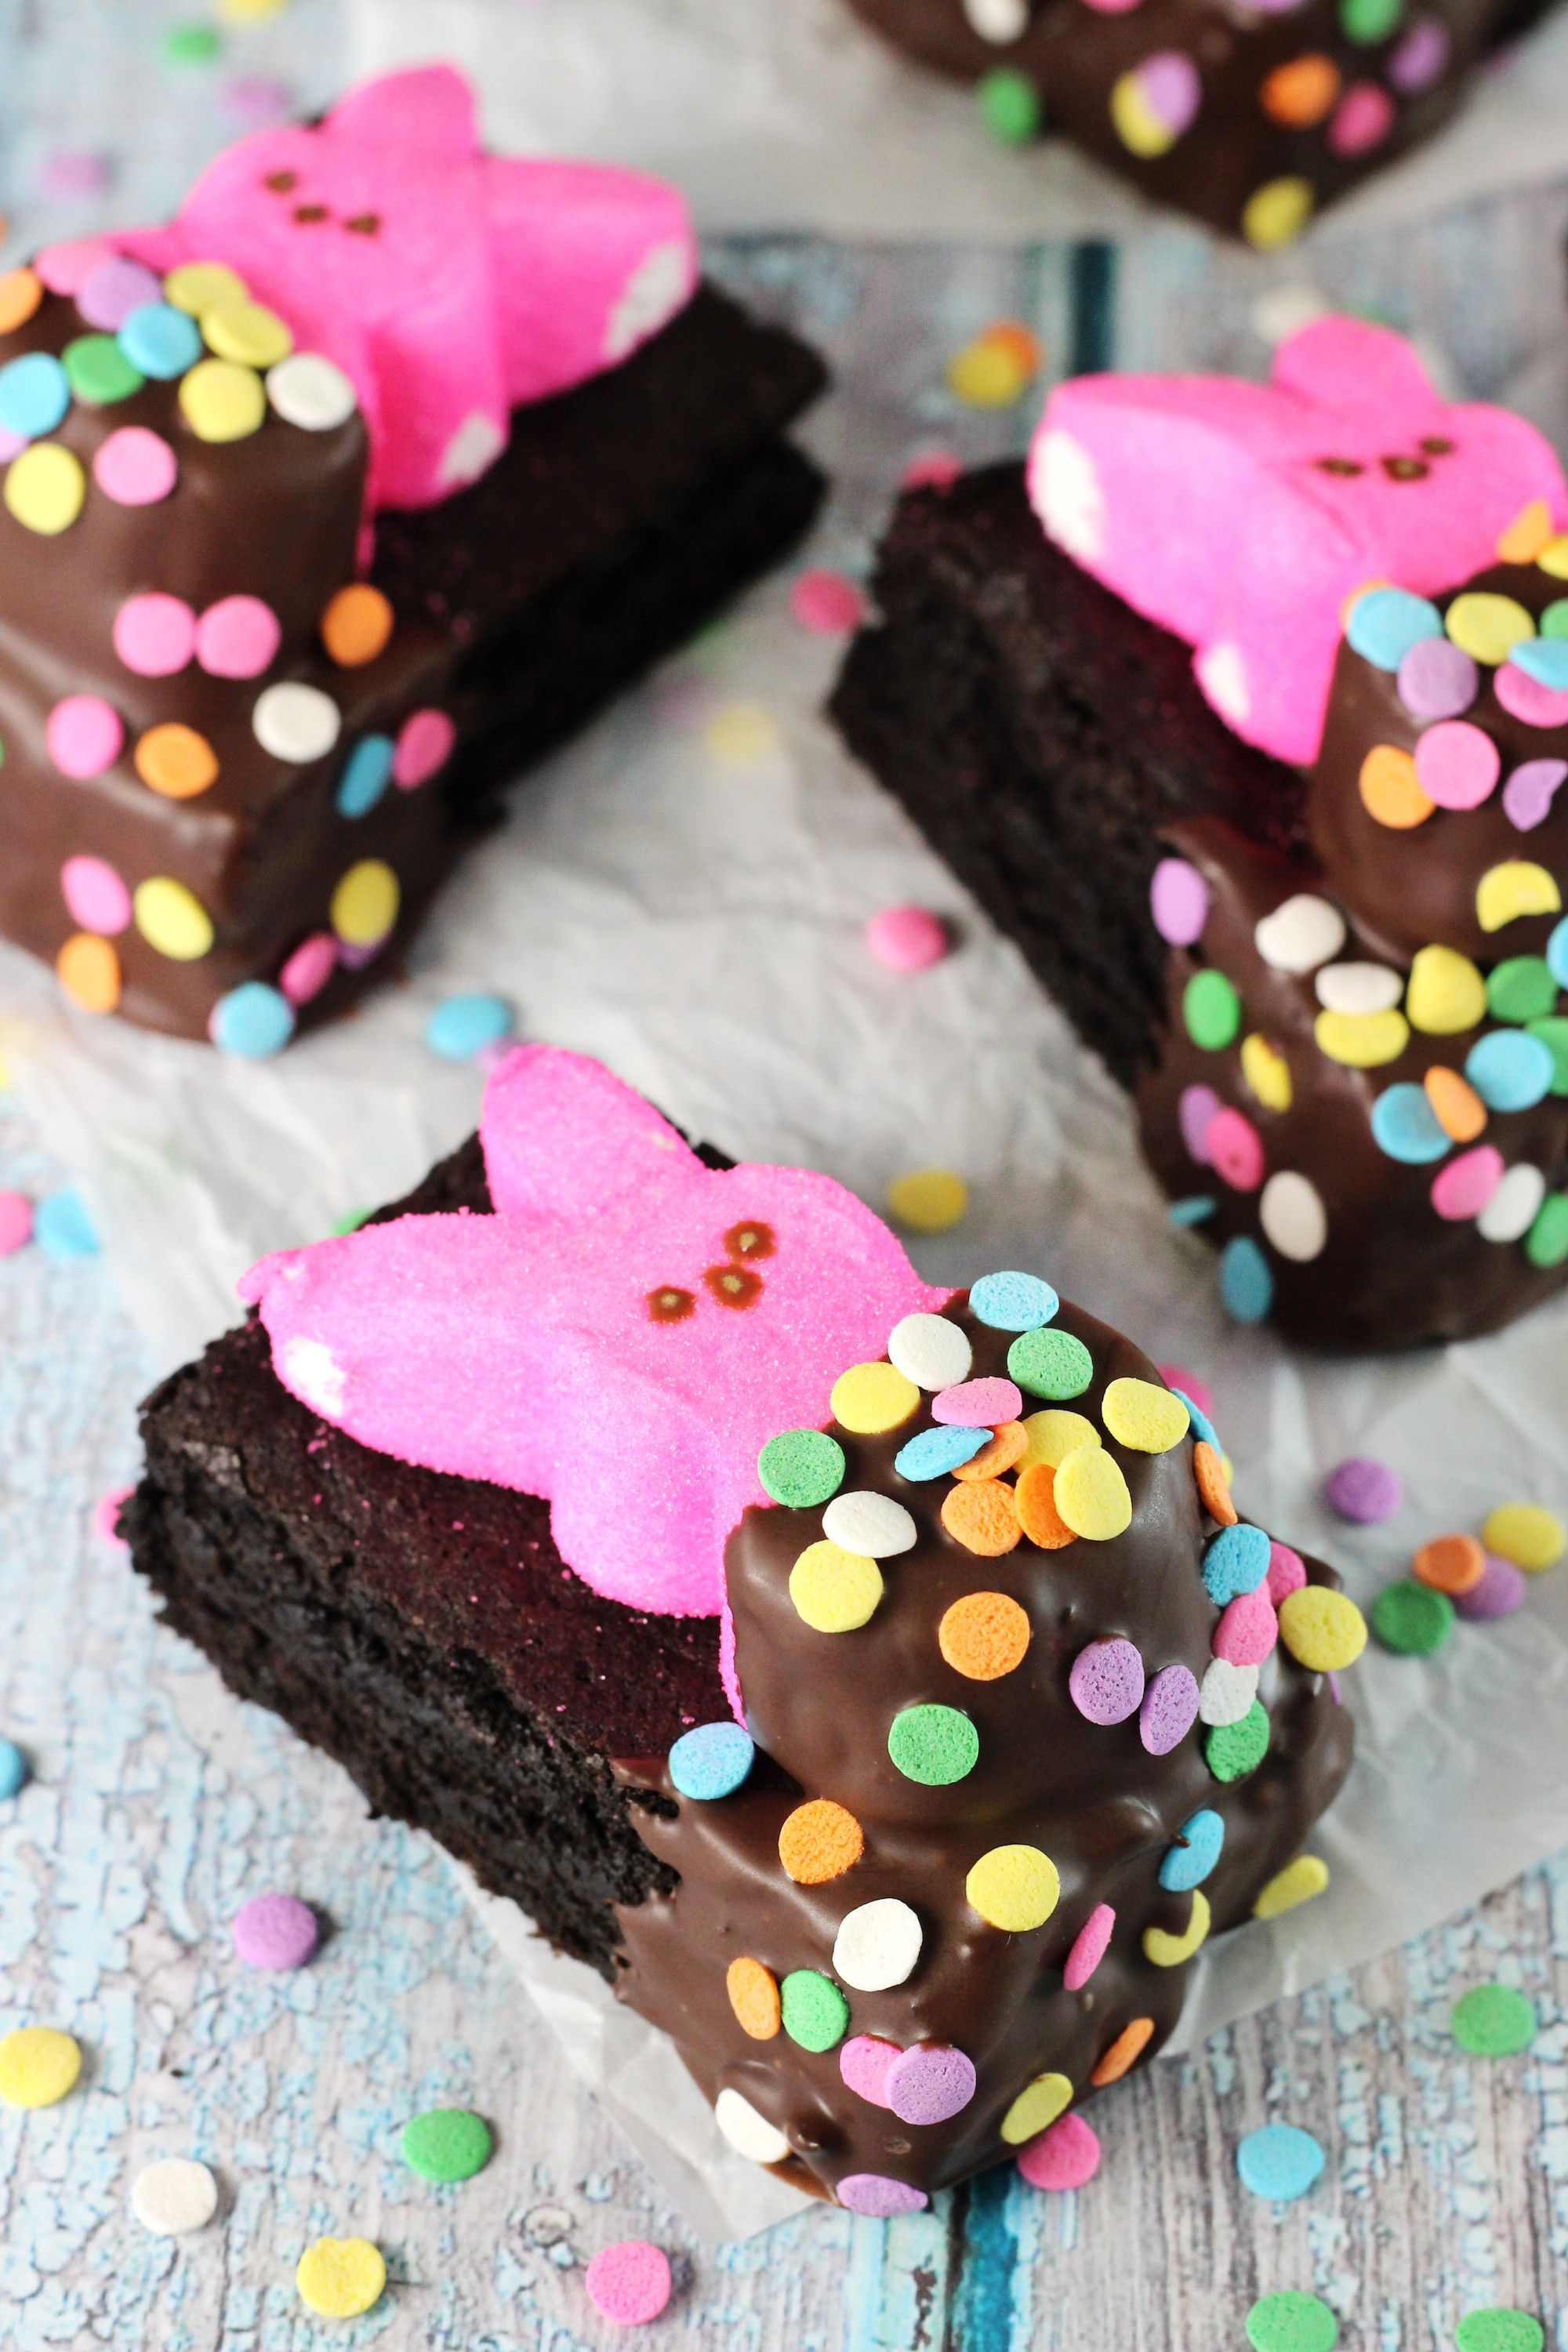 Easy Easter Dessert Recipes  11 Easy Easter Desserts That Are Almost Too Adorable To